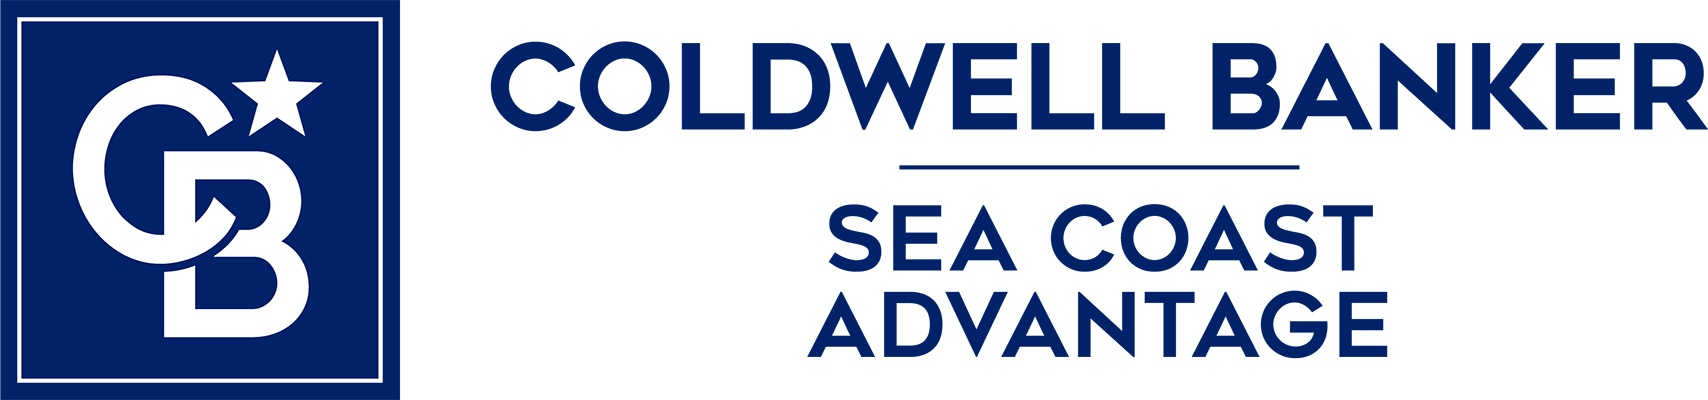 Jim Fortunato - Coldwell Banker Sea Coast Advantage Realty